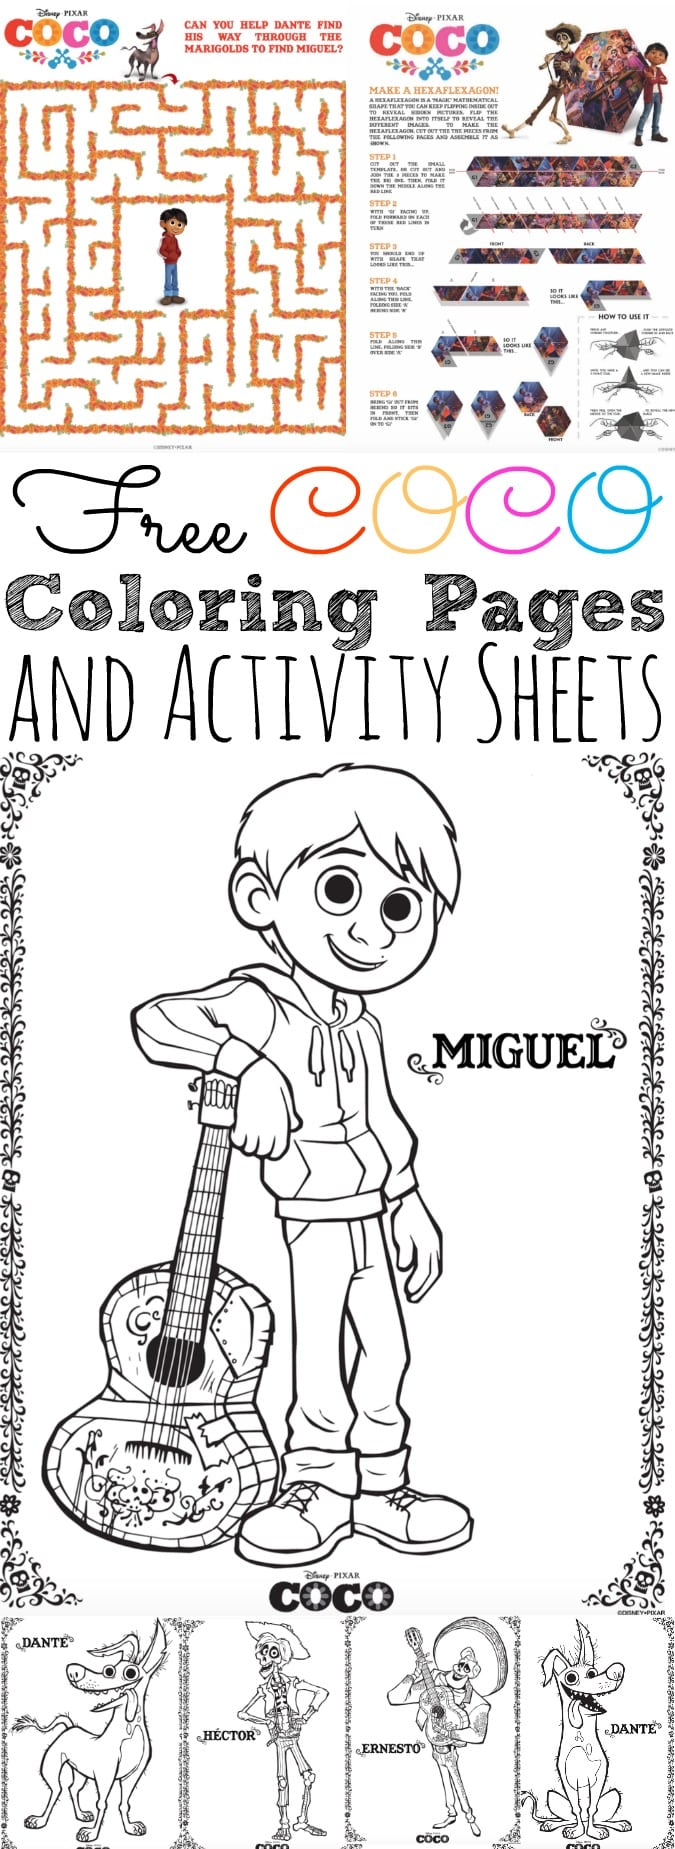 free coco coloring pages and activity sheets simplytodaylifecom - Coloring Pages Images